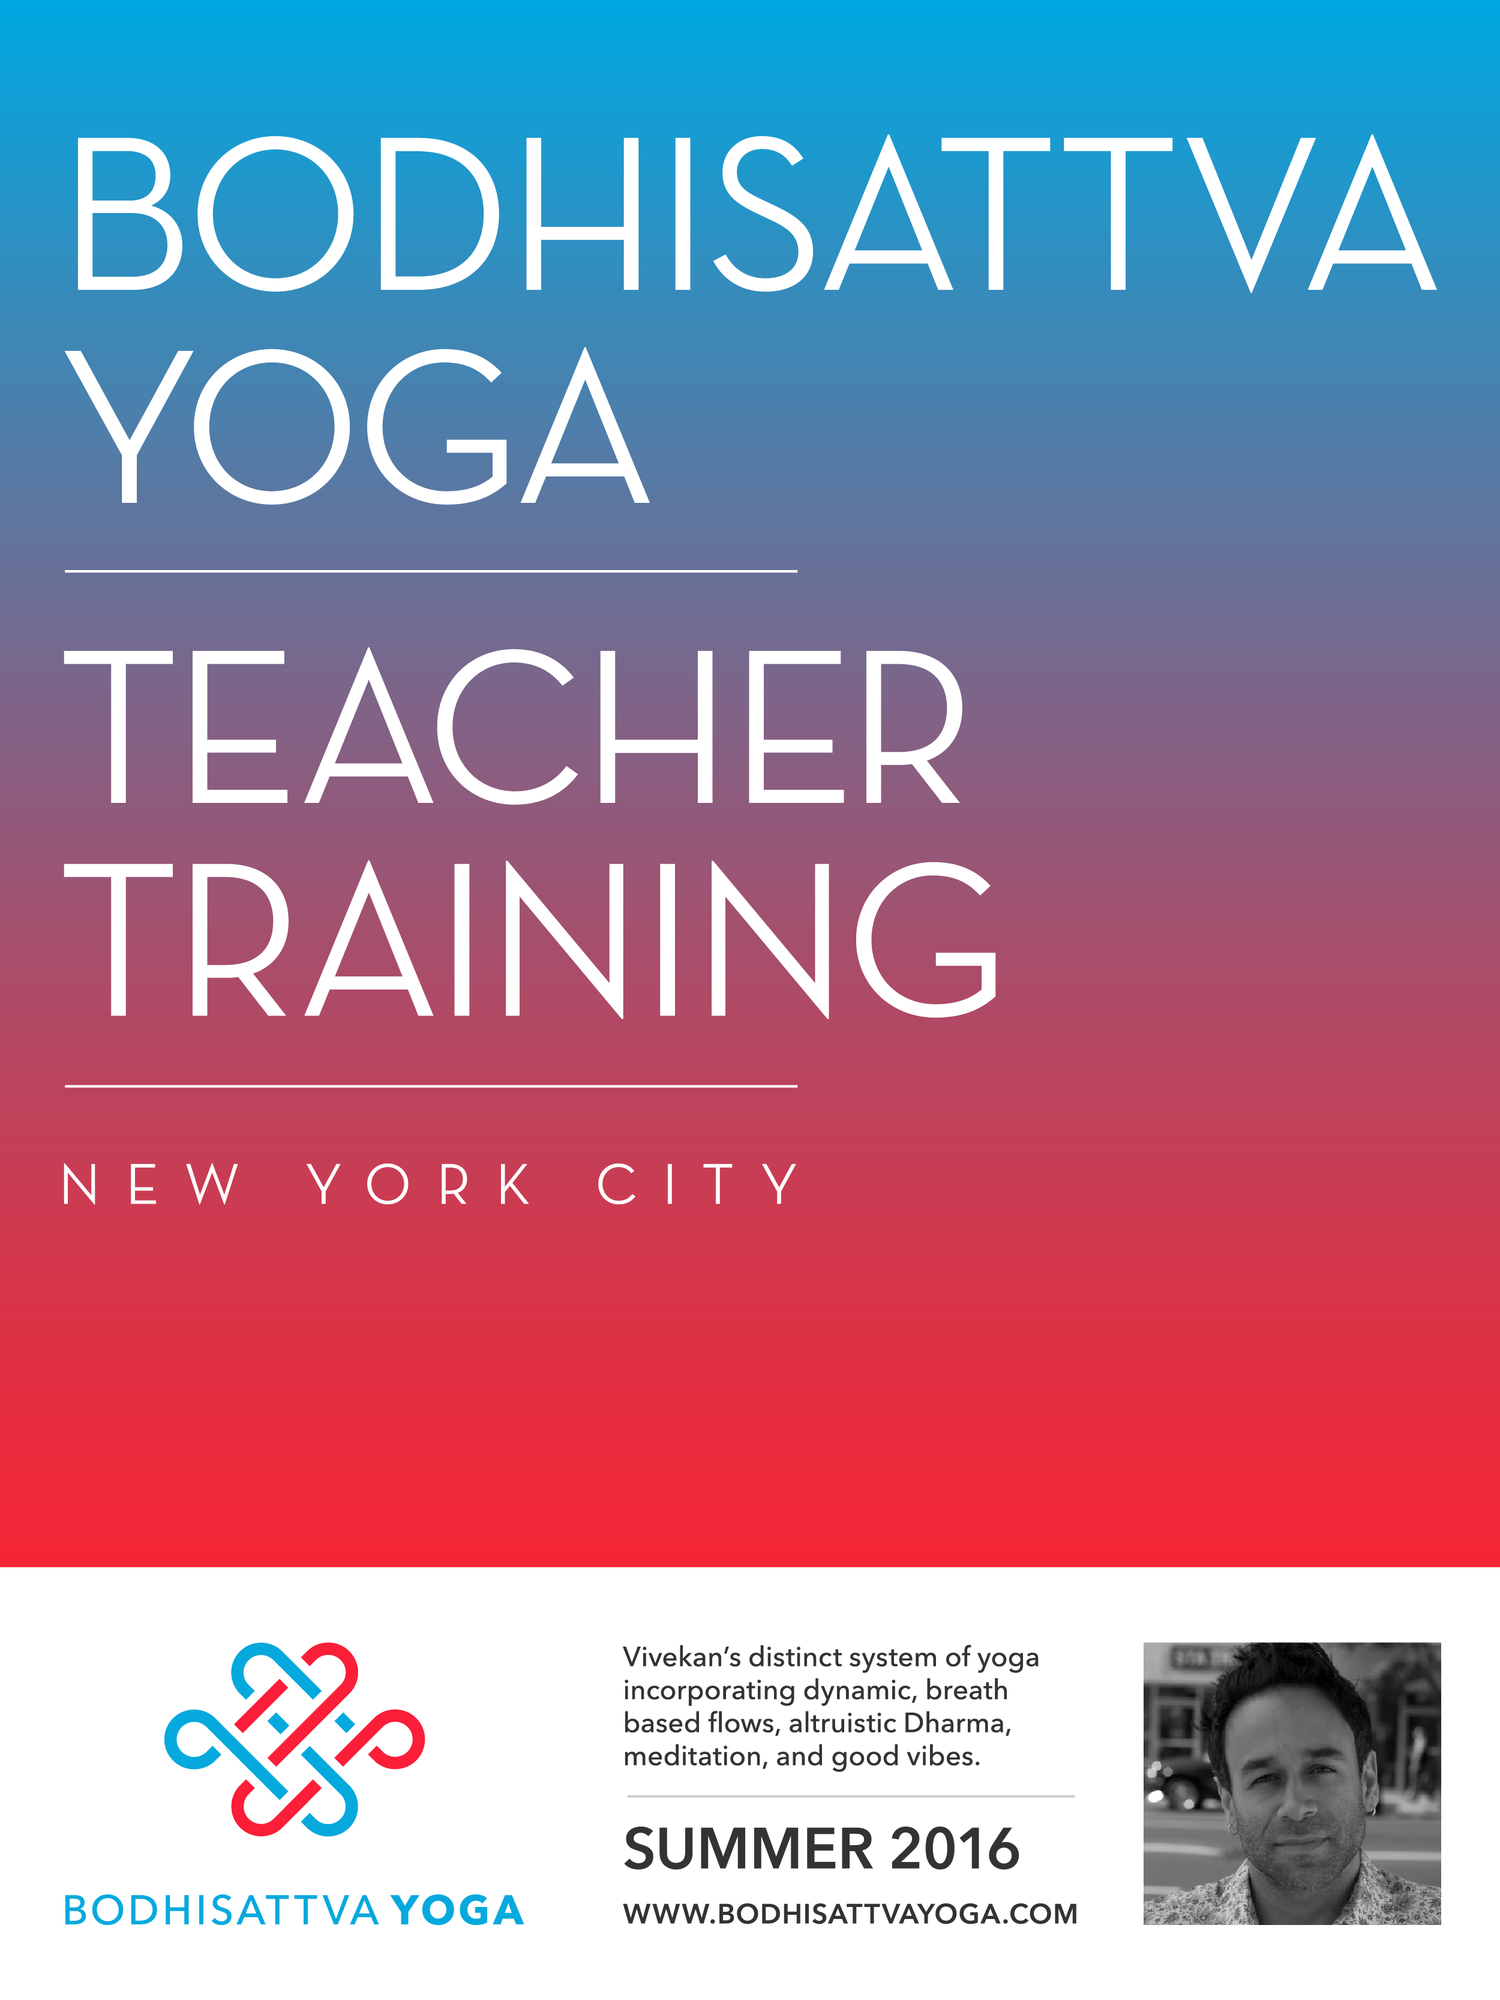 Awaken Your Inner Warrior Yoga Teacher Training Program Bodhisattva Yoga